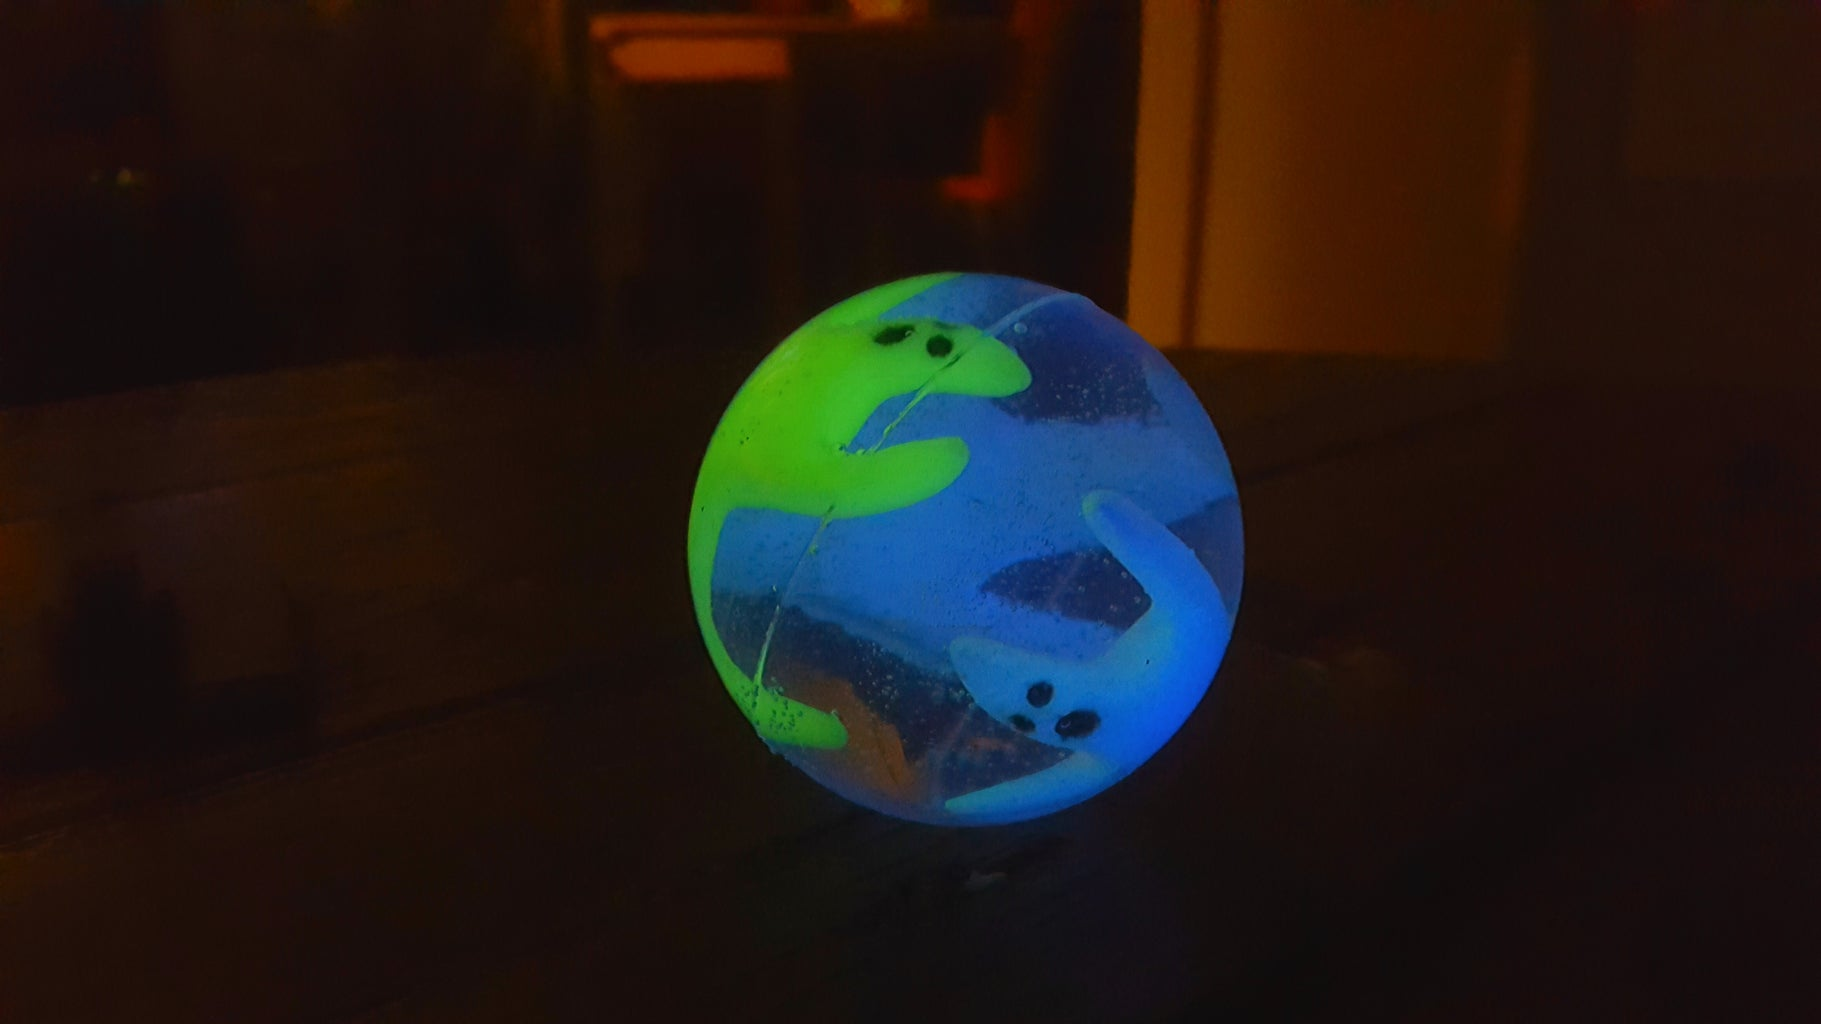 Ghosts in a Shell Bouncing Ball (Glow in the Dark)